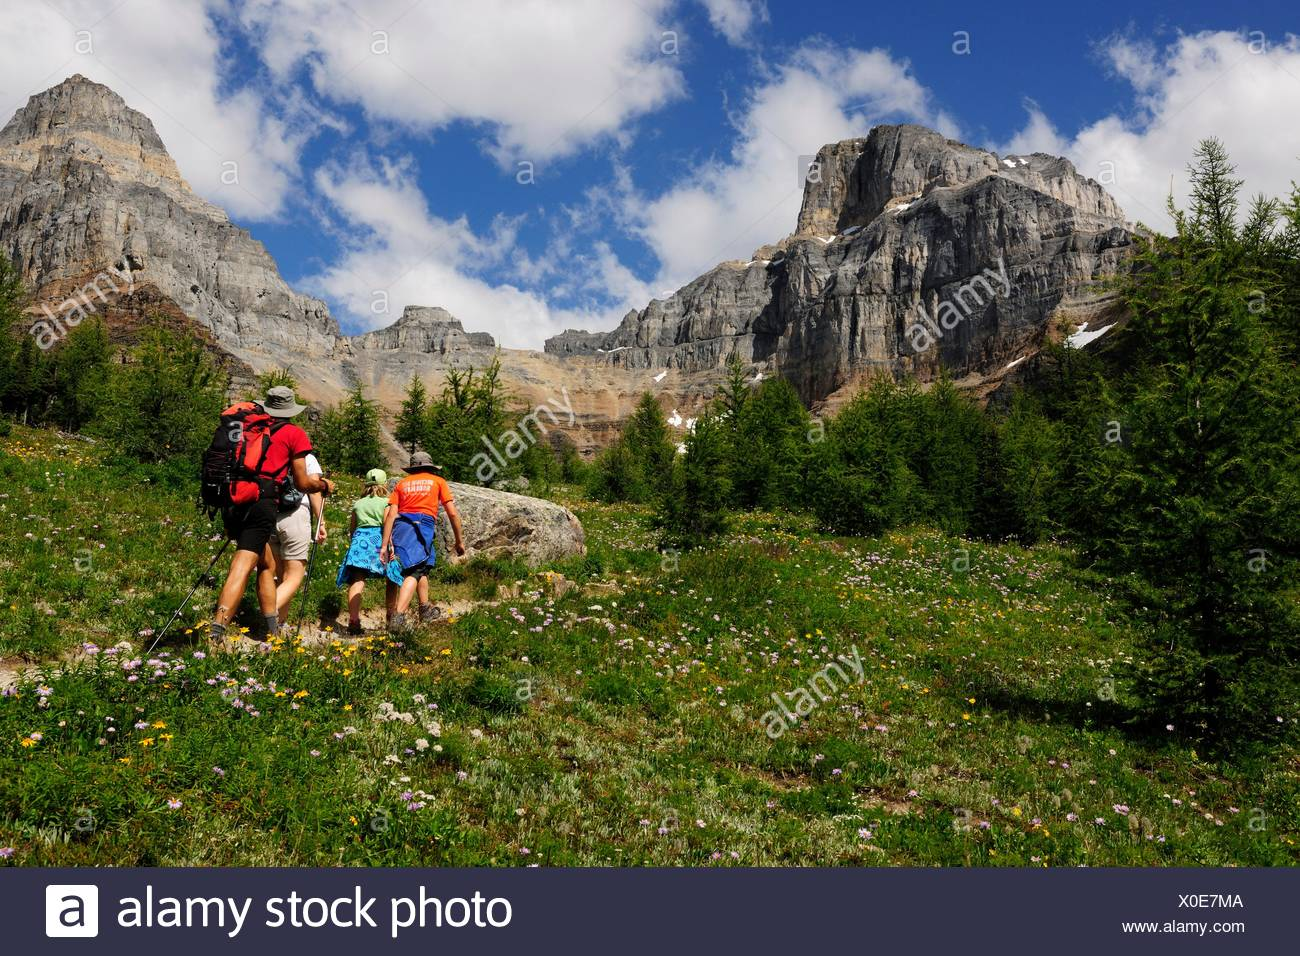 Hikers rambling in the Rocky Mountains, Banff National Park, Alberta Province, Canada - Stock Image